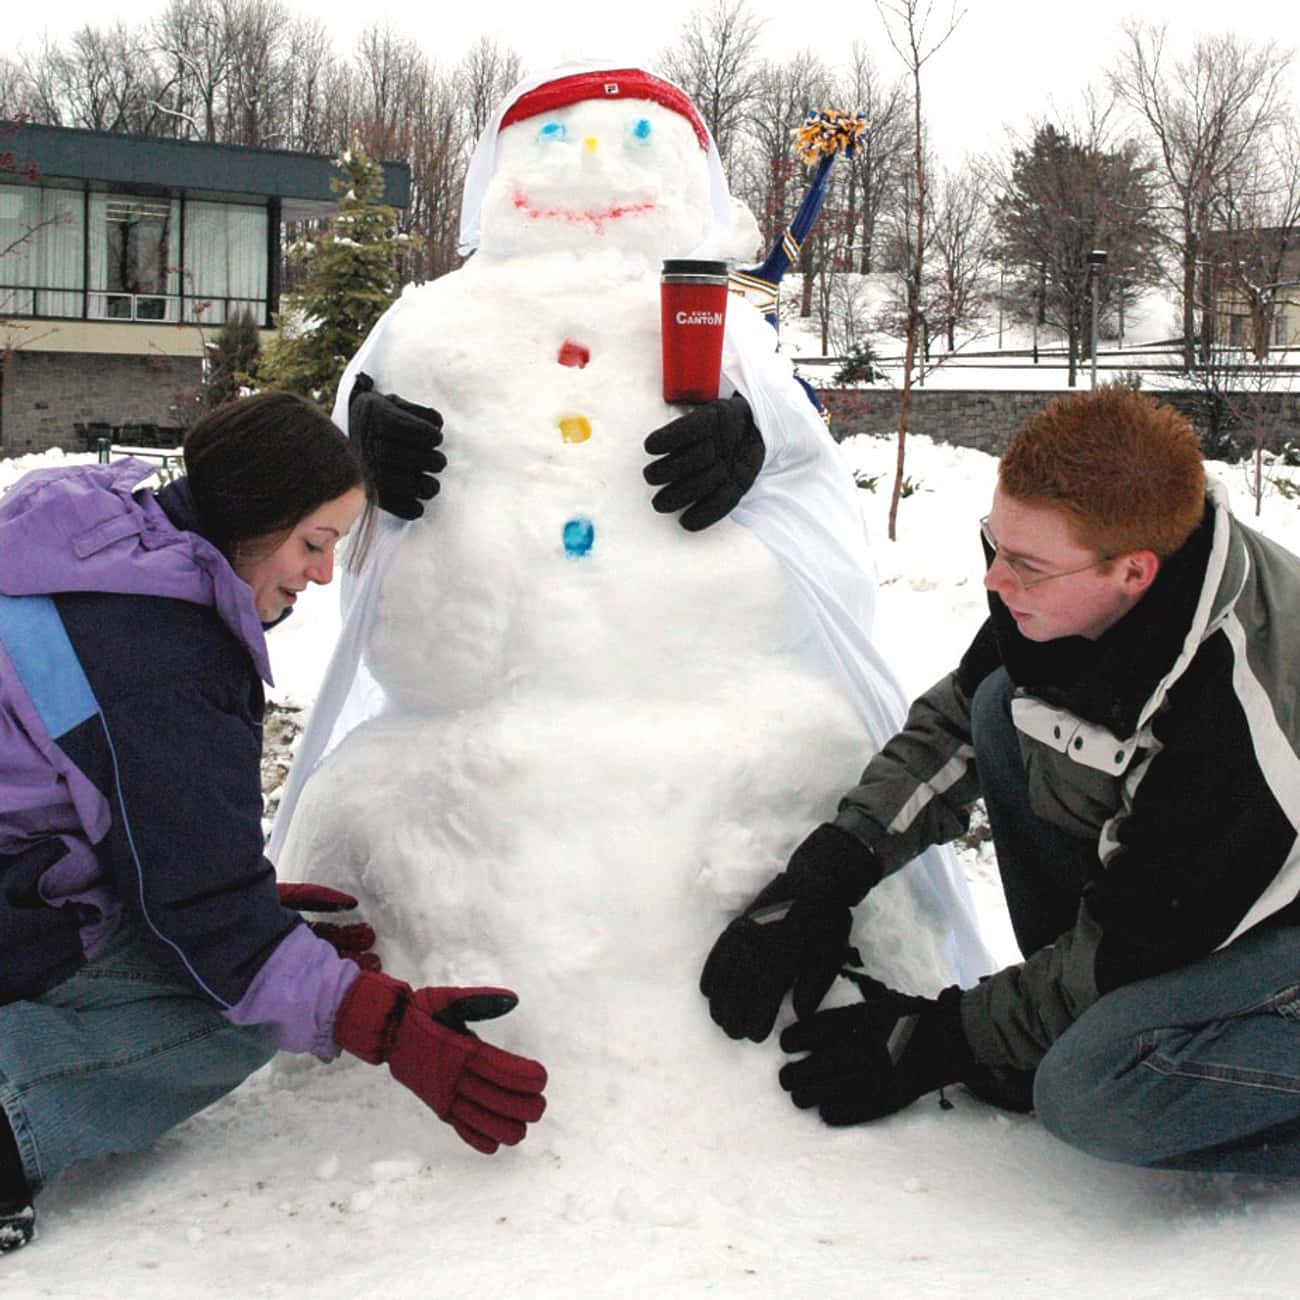 Build a Snowman is listed (or ranked) 3 on the list Date Ideas for Winter